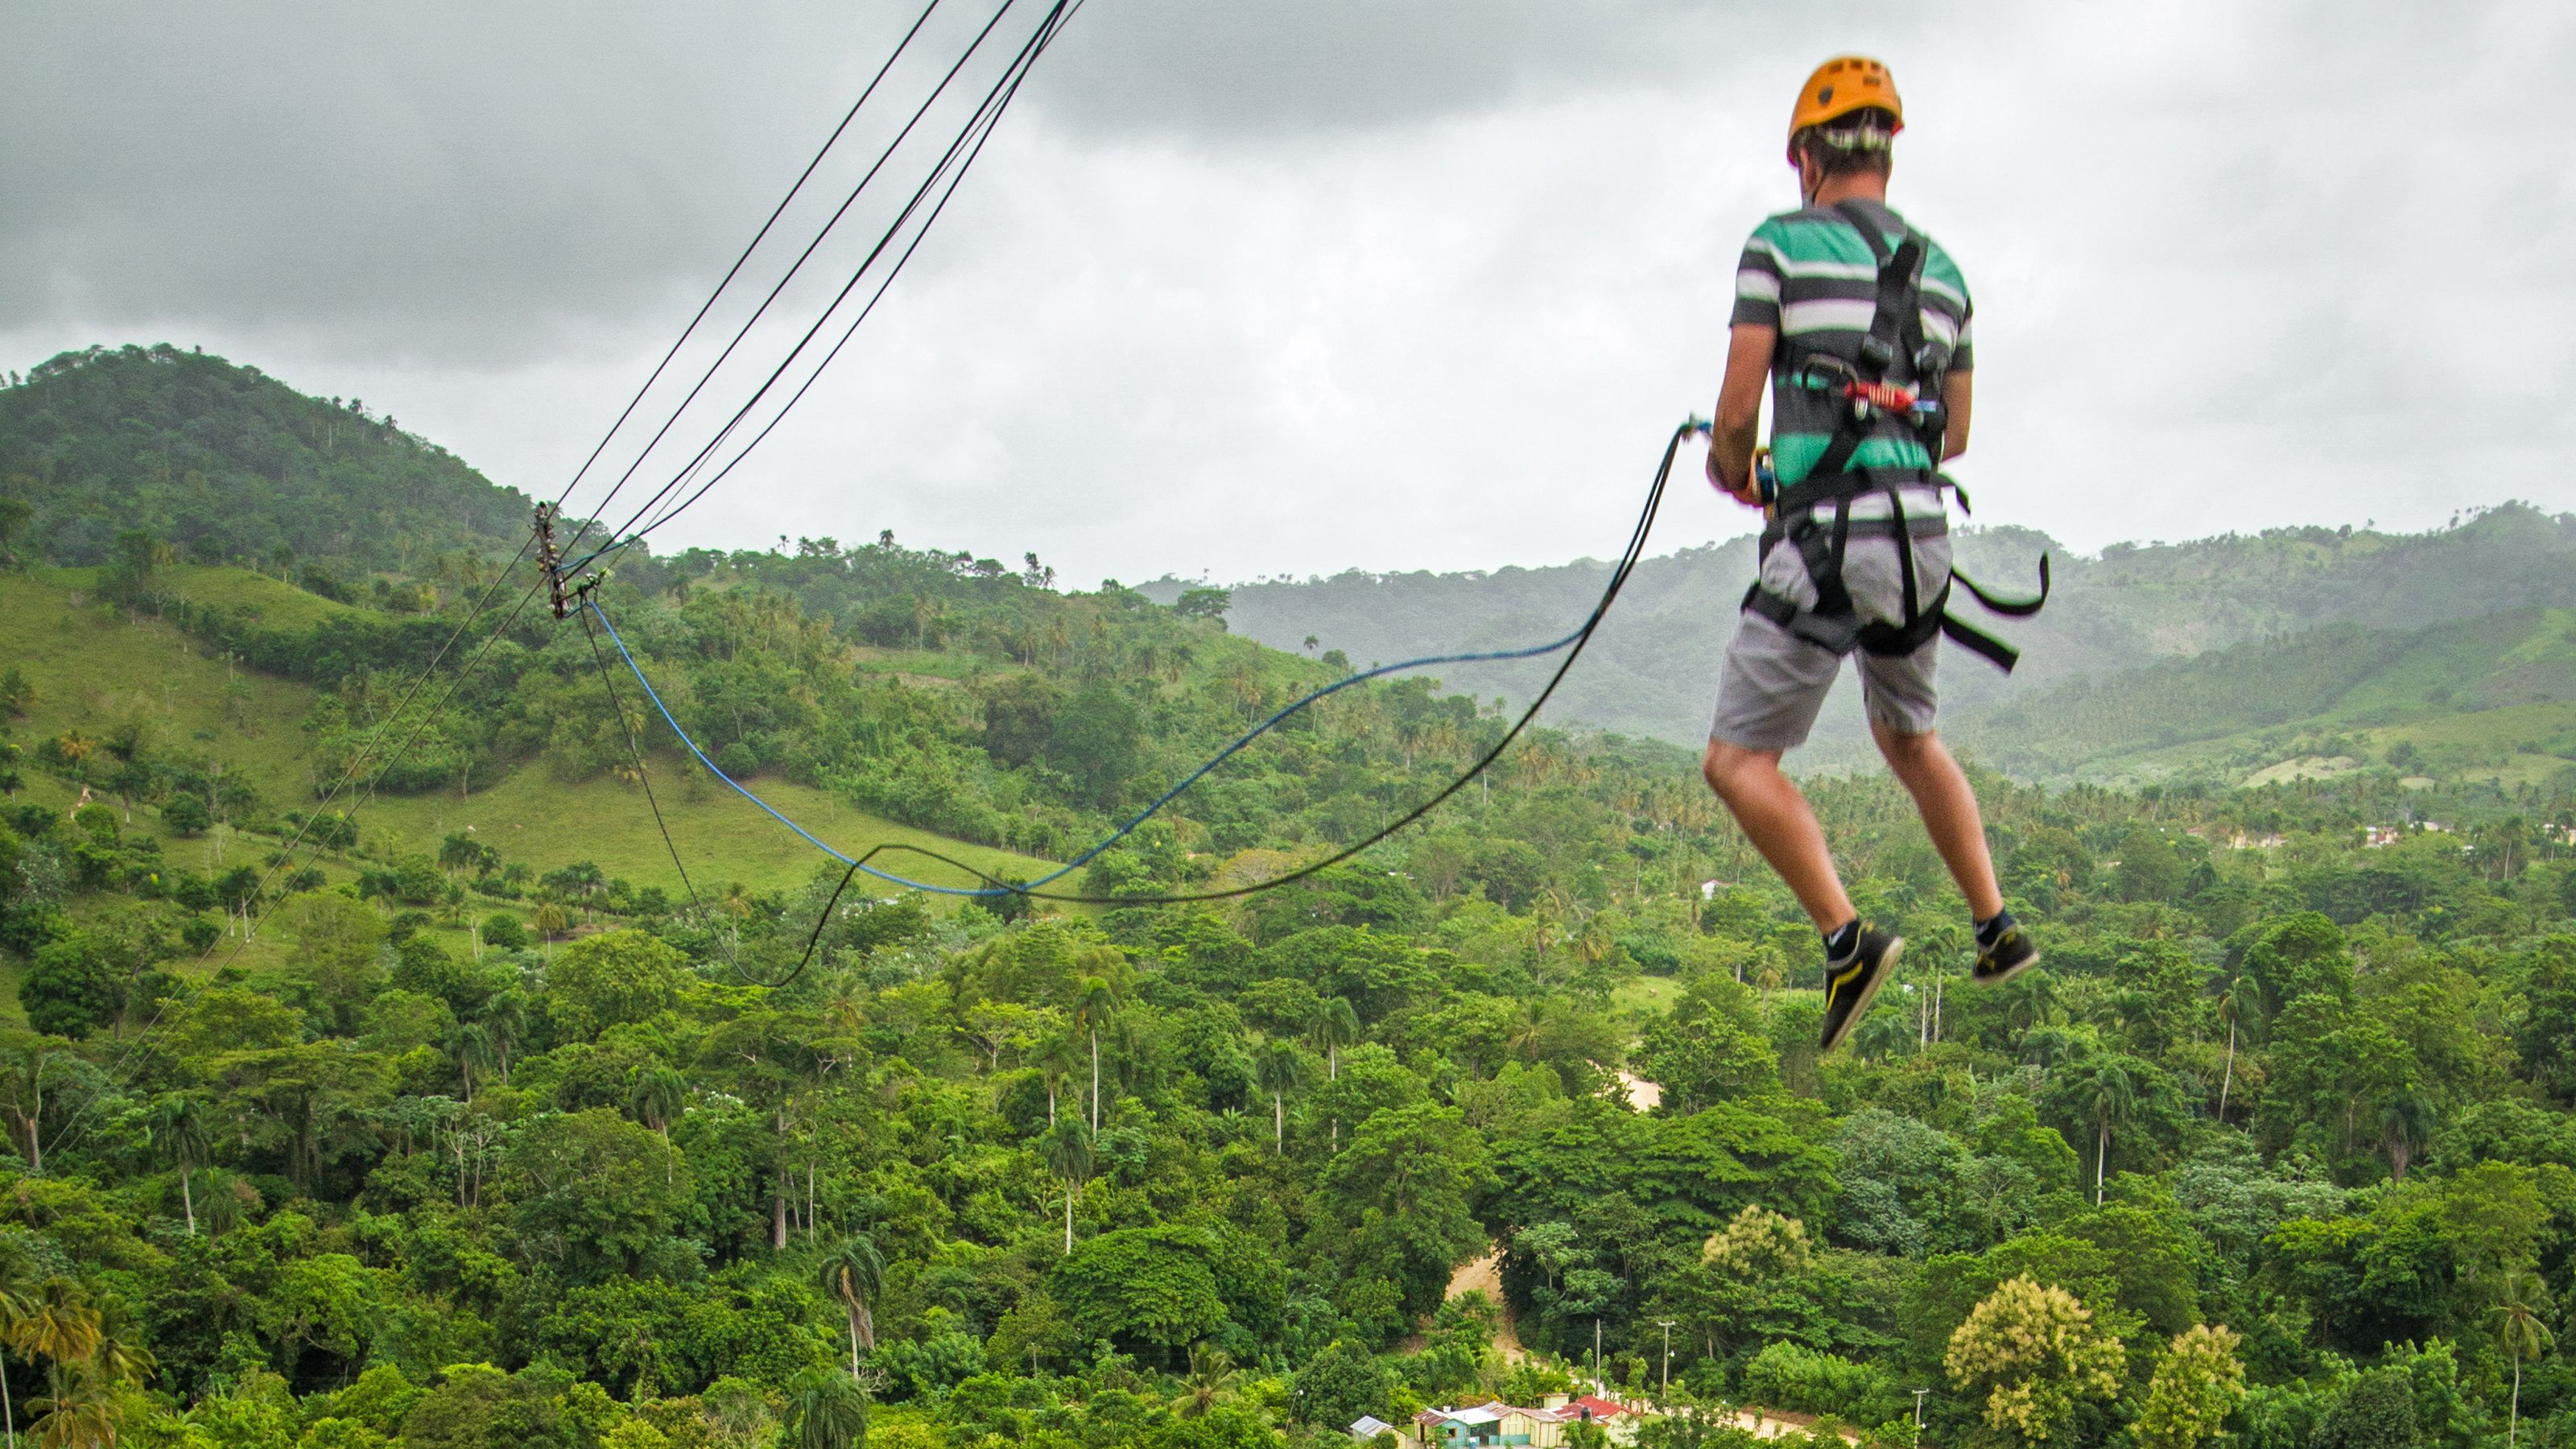 Man at top of swing in Punta Cana